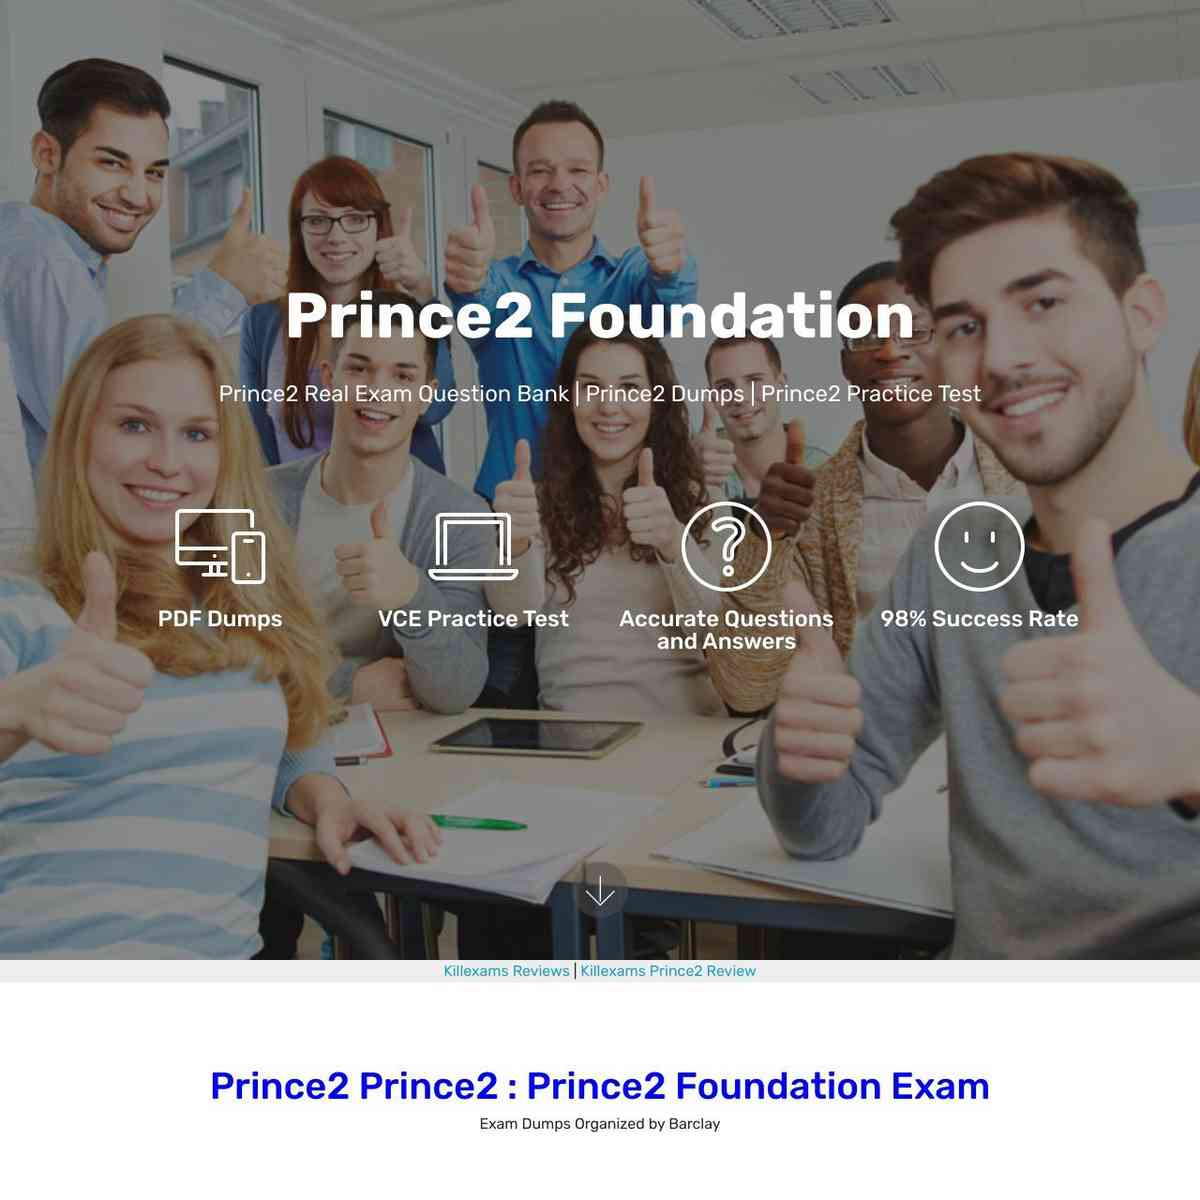 100% free dumps of Prince2 exam provided by killexams.com